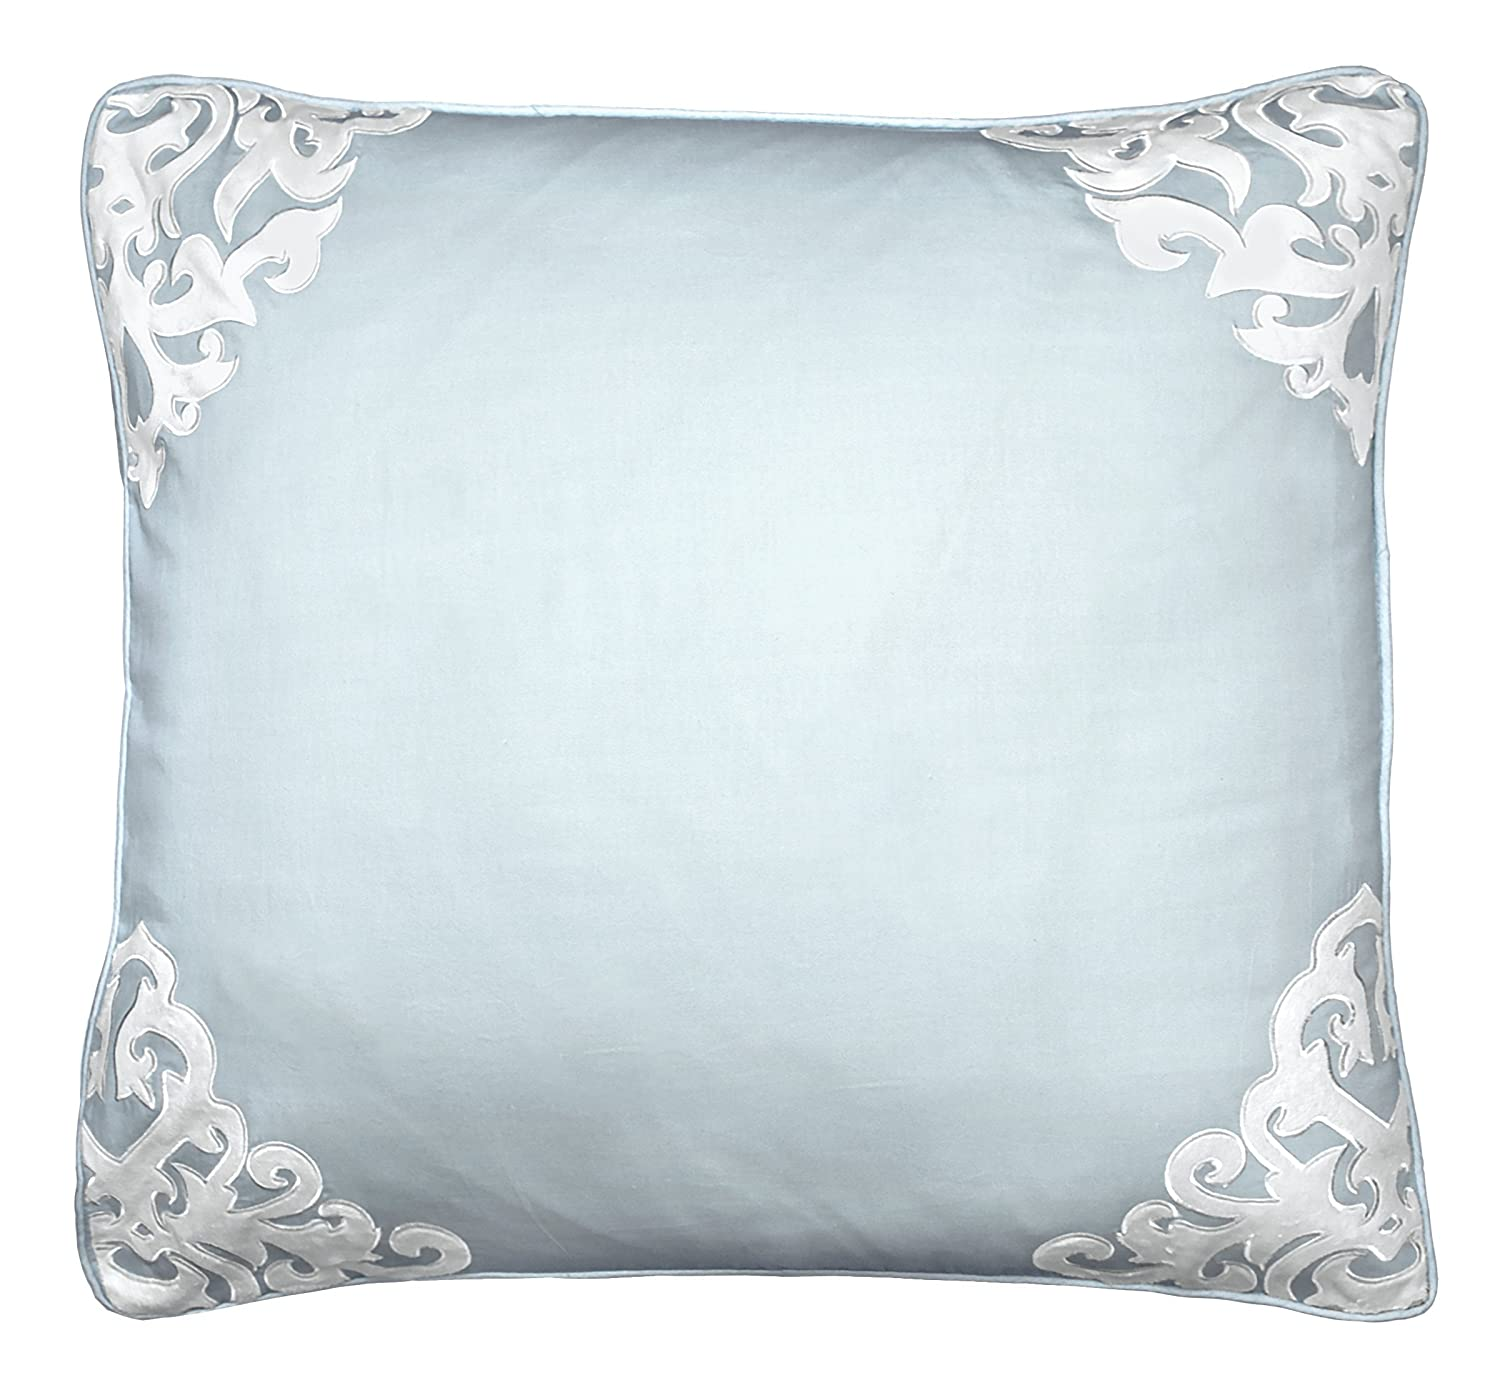 """Beautyrest Throw Pillow Covers - Arlee Decorative Pillow Cases Euro Sham for Sofa Couch Bedroom Living Room, 26"""" x 26"""", Spa"""